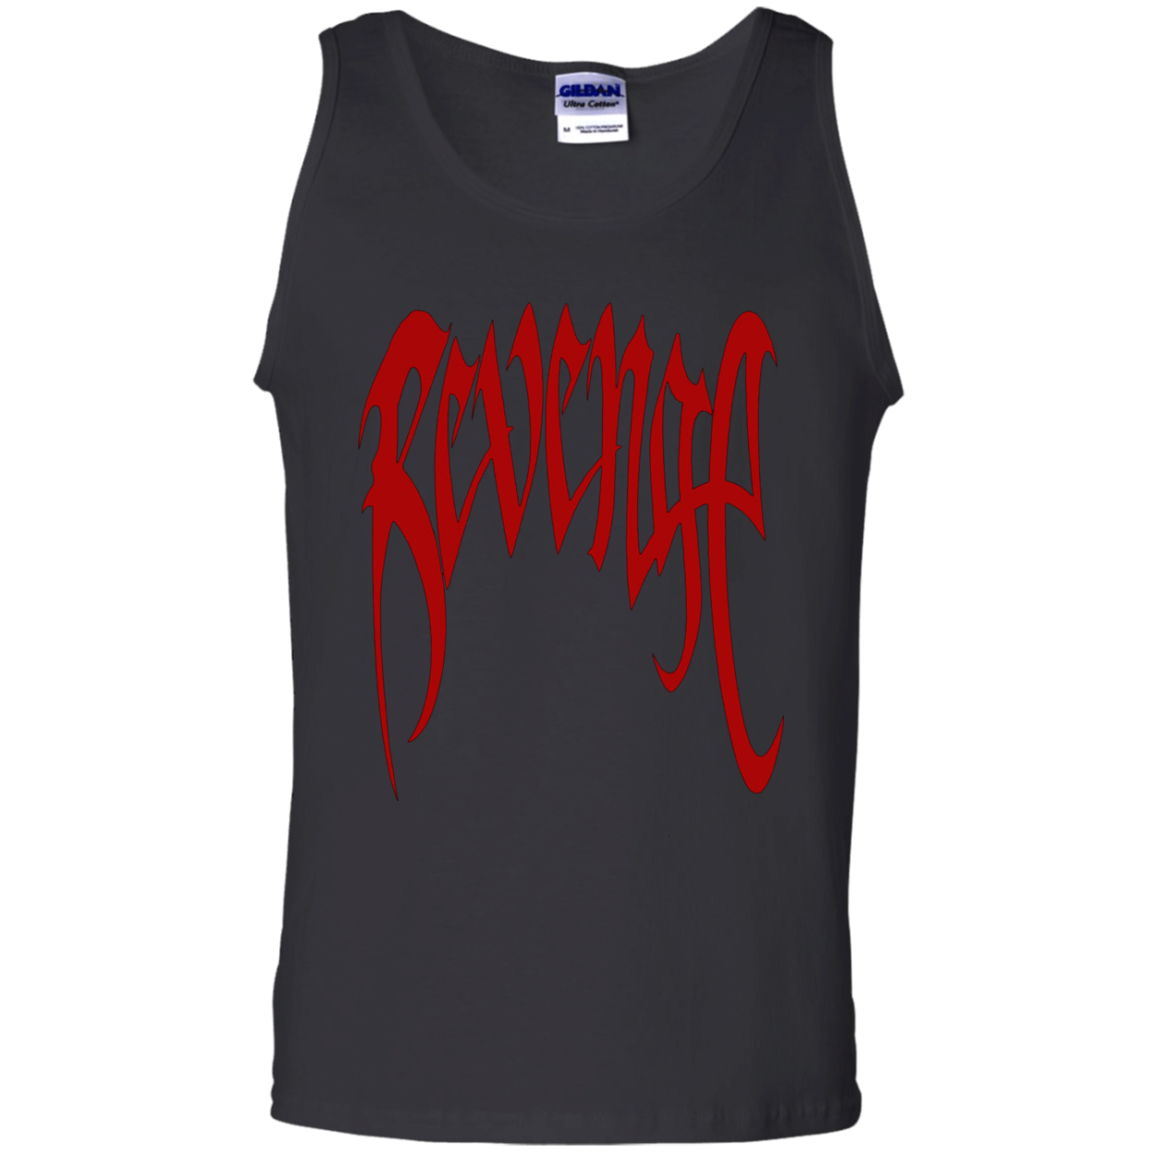 XXXTentacion Tank Top Revenge Merch Red